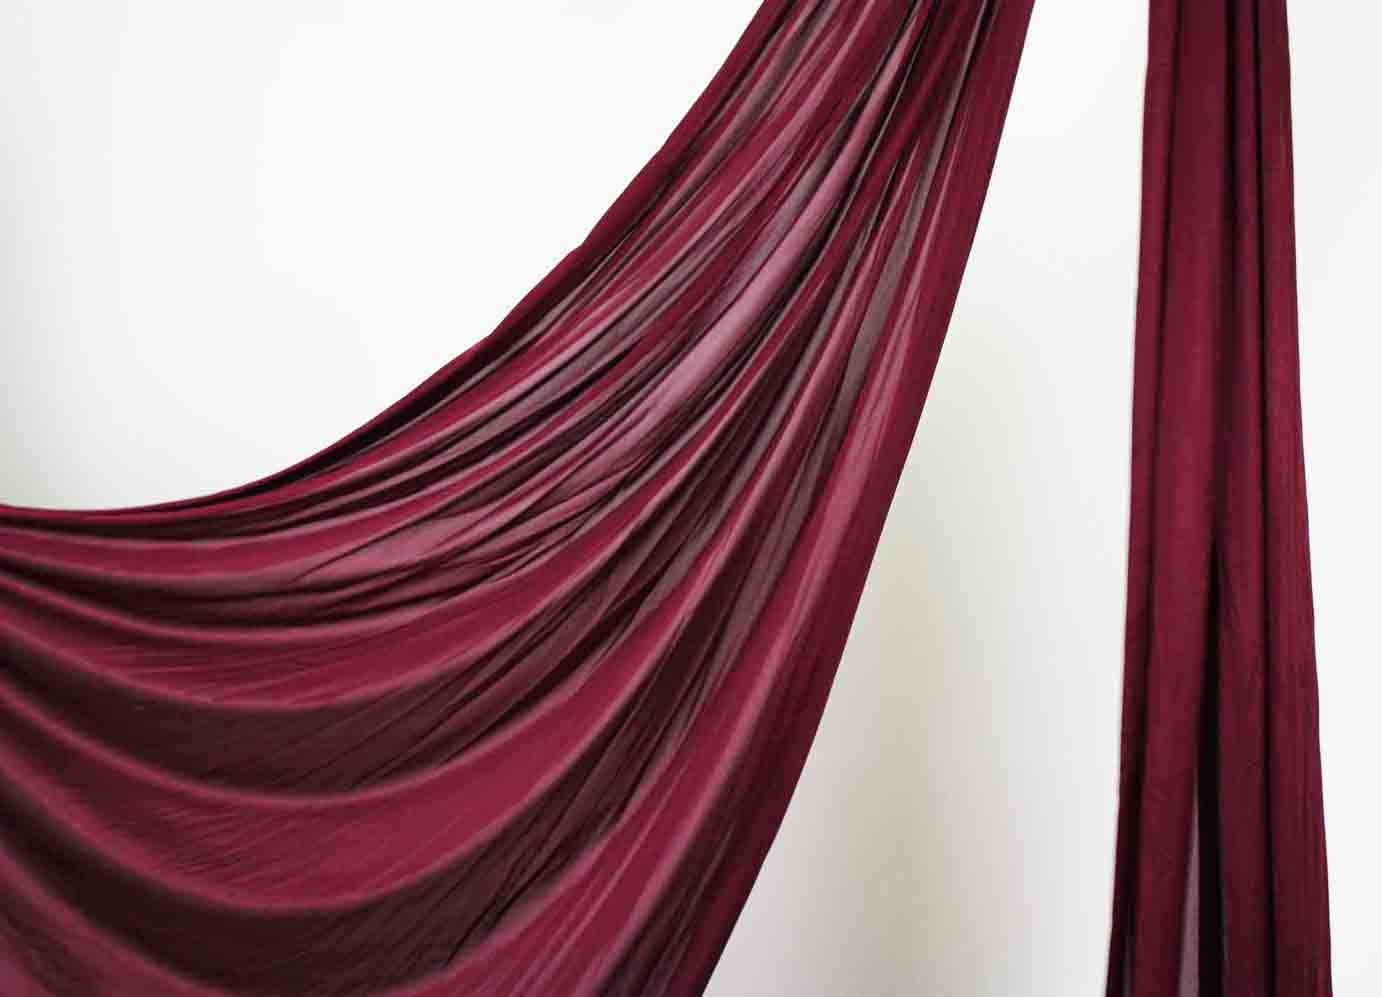 aerial fabric 54     wide 100  nylon tricot aerial silk fabric 54     wide for sale  ideal for aerial dance and aerial yoga hammocks  aerial fabric 54     wide 100  nylon tricot aerial silk fabric 54      rh   circusbyus